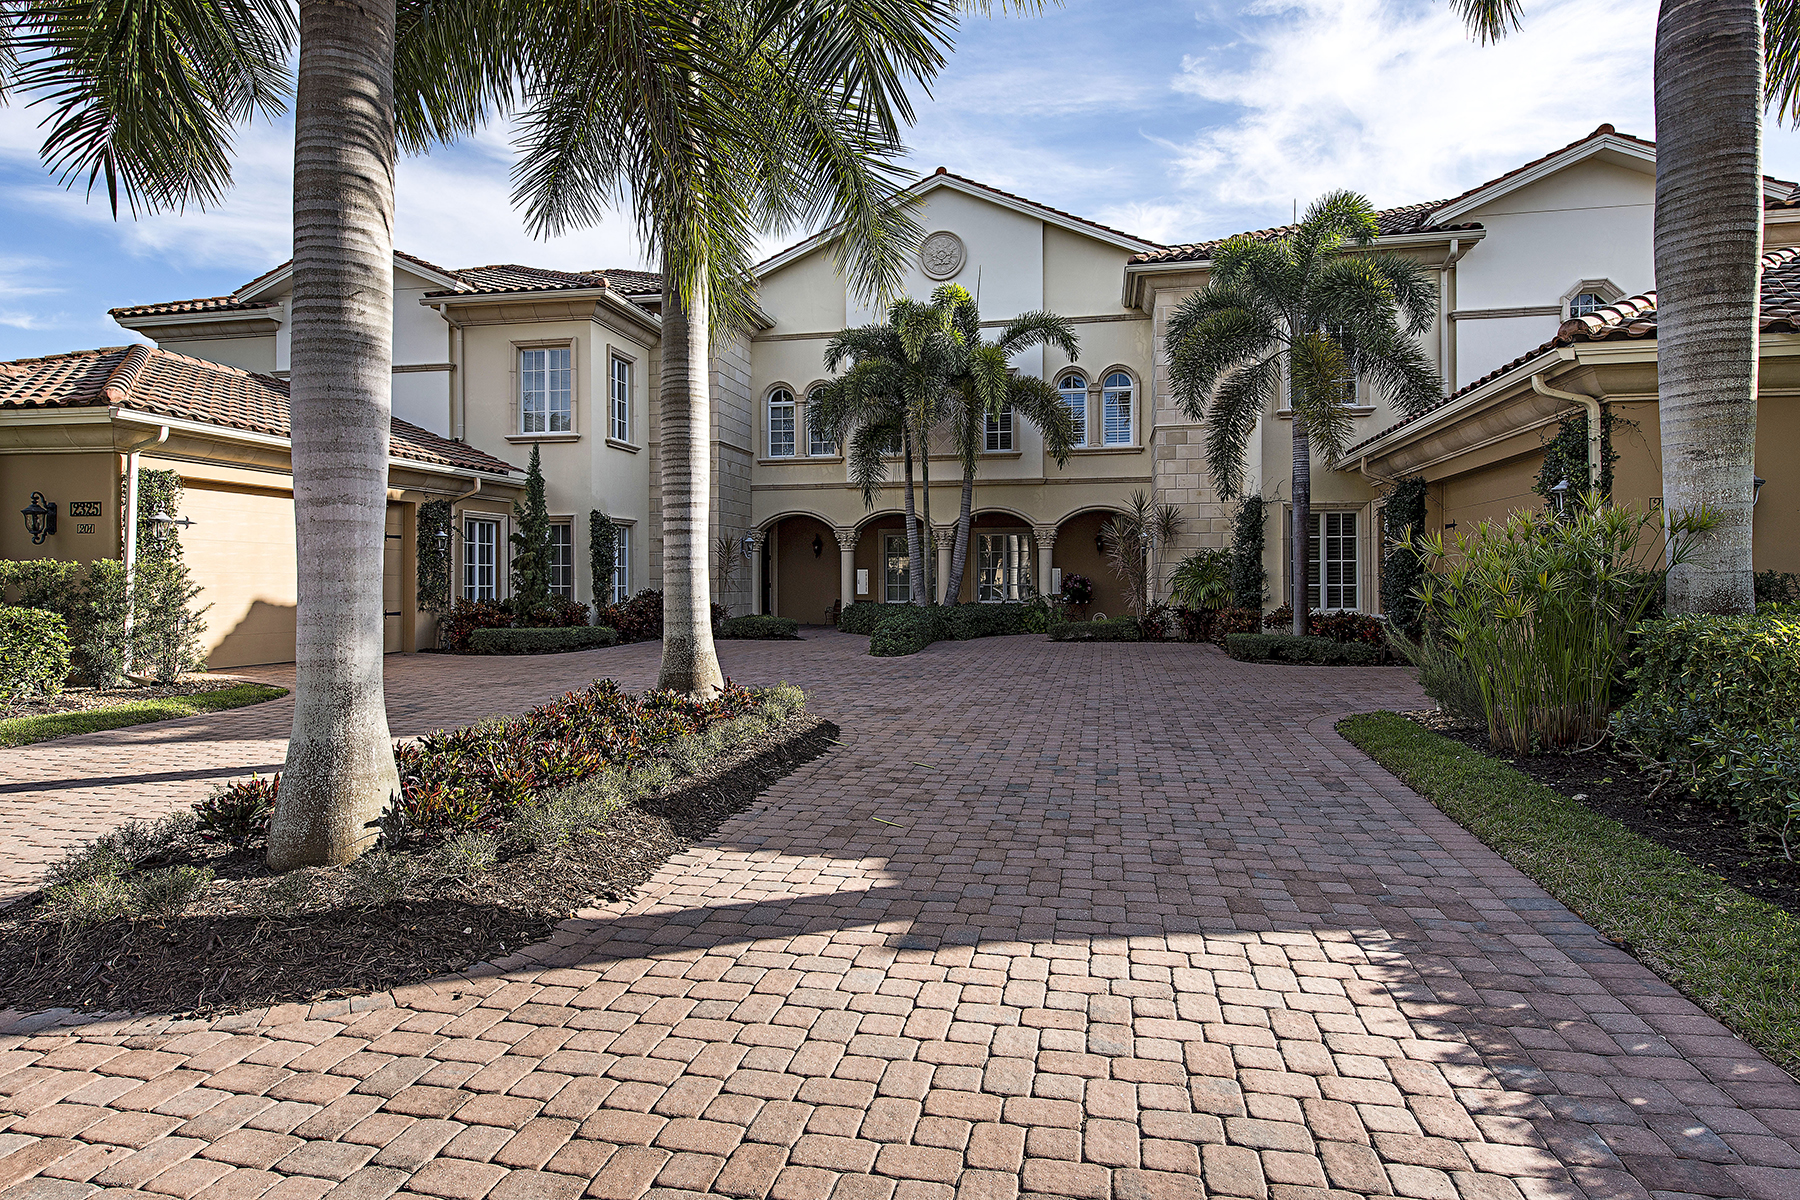 Condominium for Sale at 2325 Residence Cir , 202, Naples, FL 34105 2325 Residence Cir 202 Naples, Florida, 34105 United States